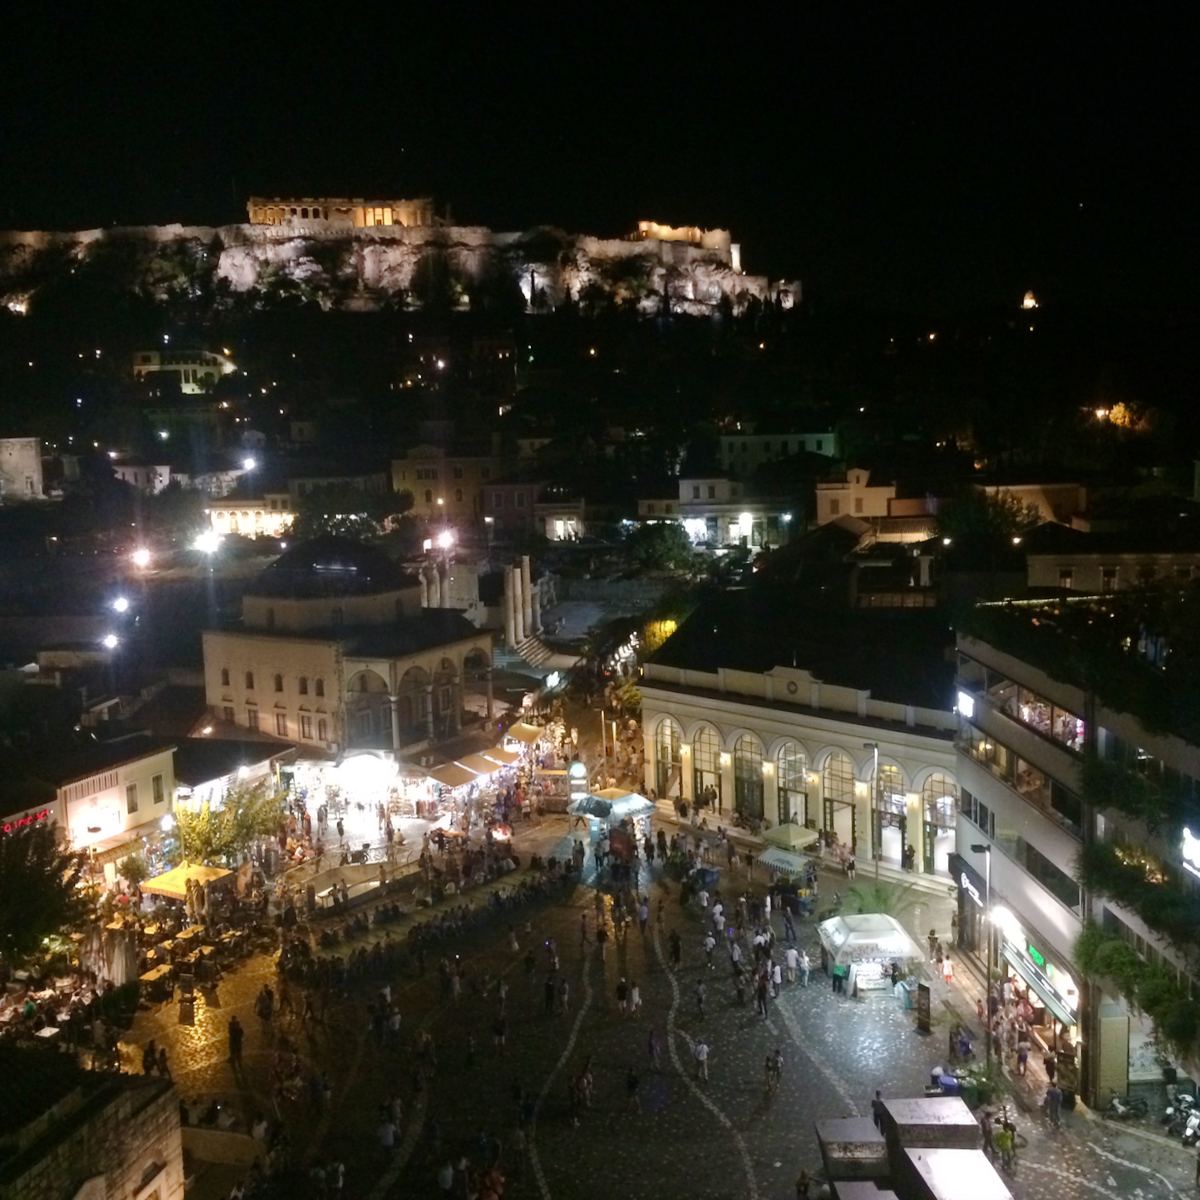 Goodnight, Athens.